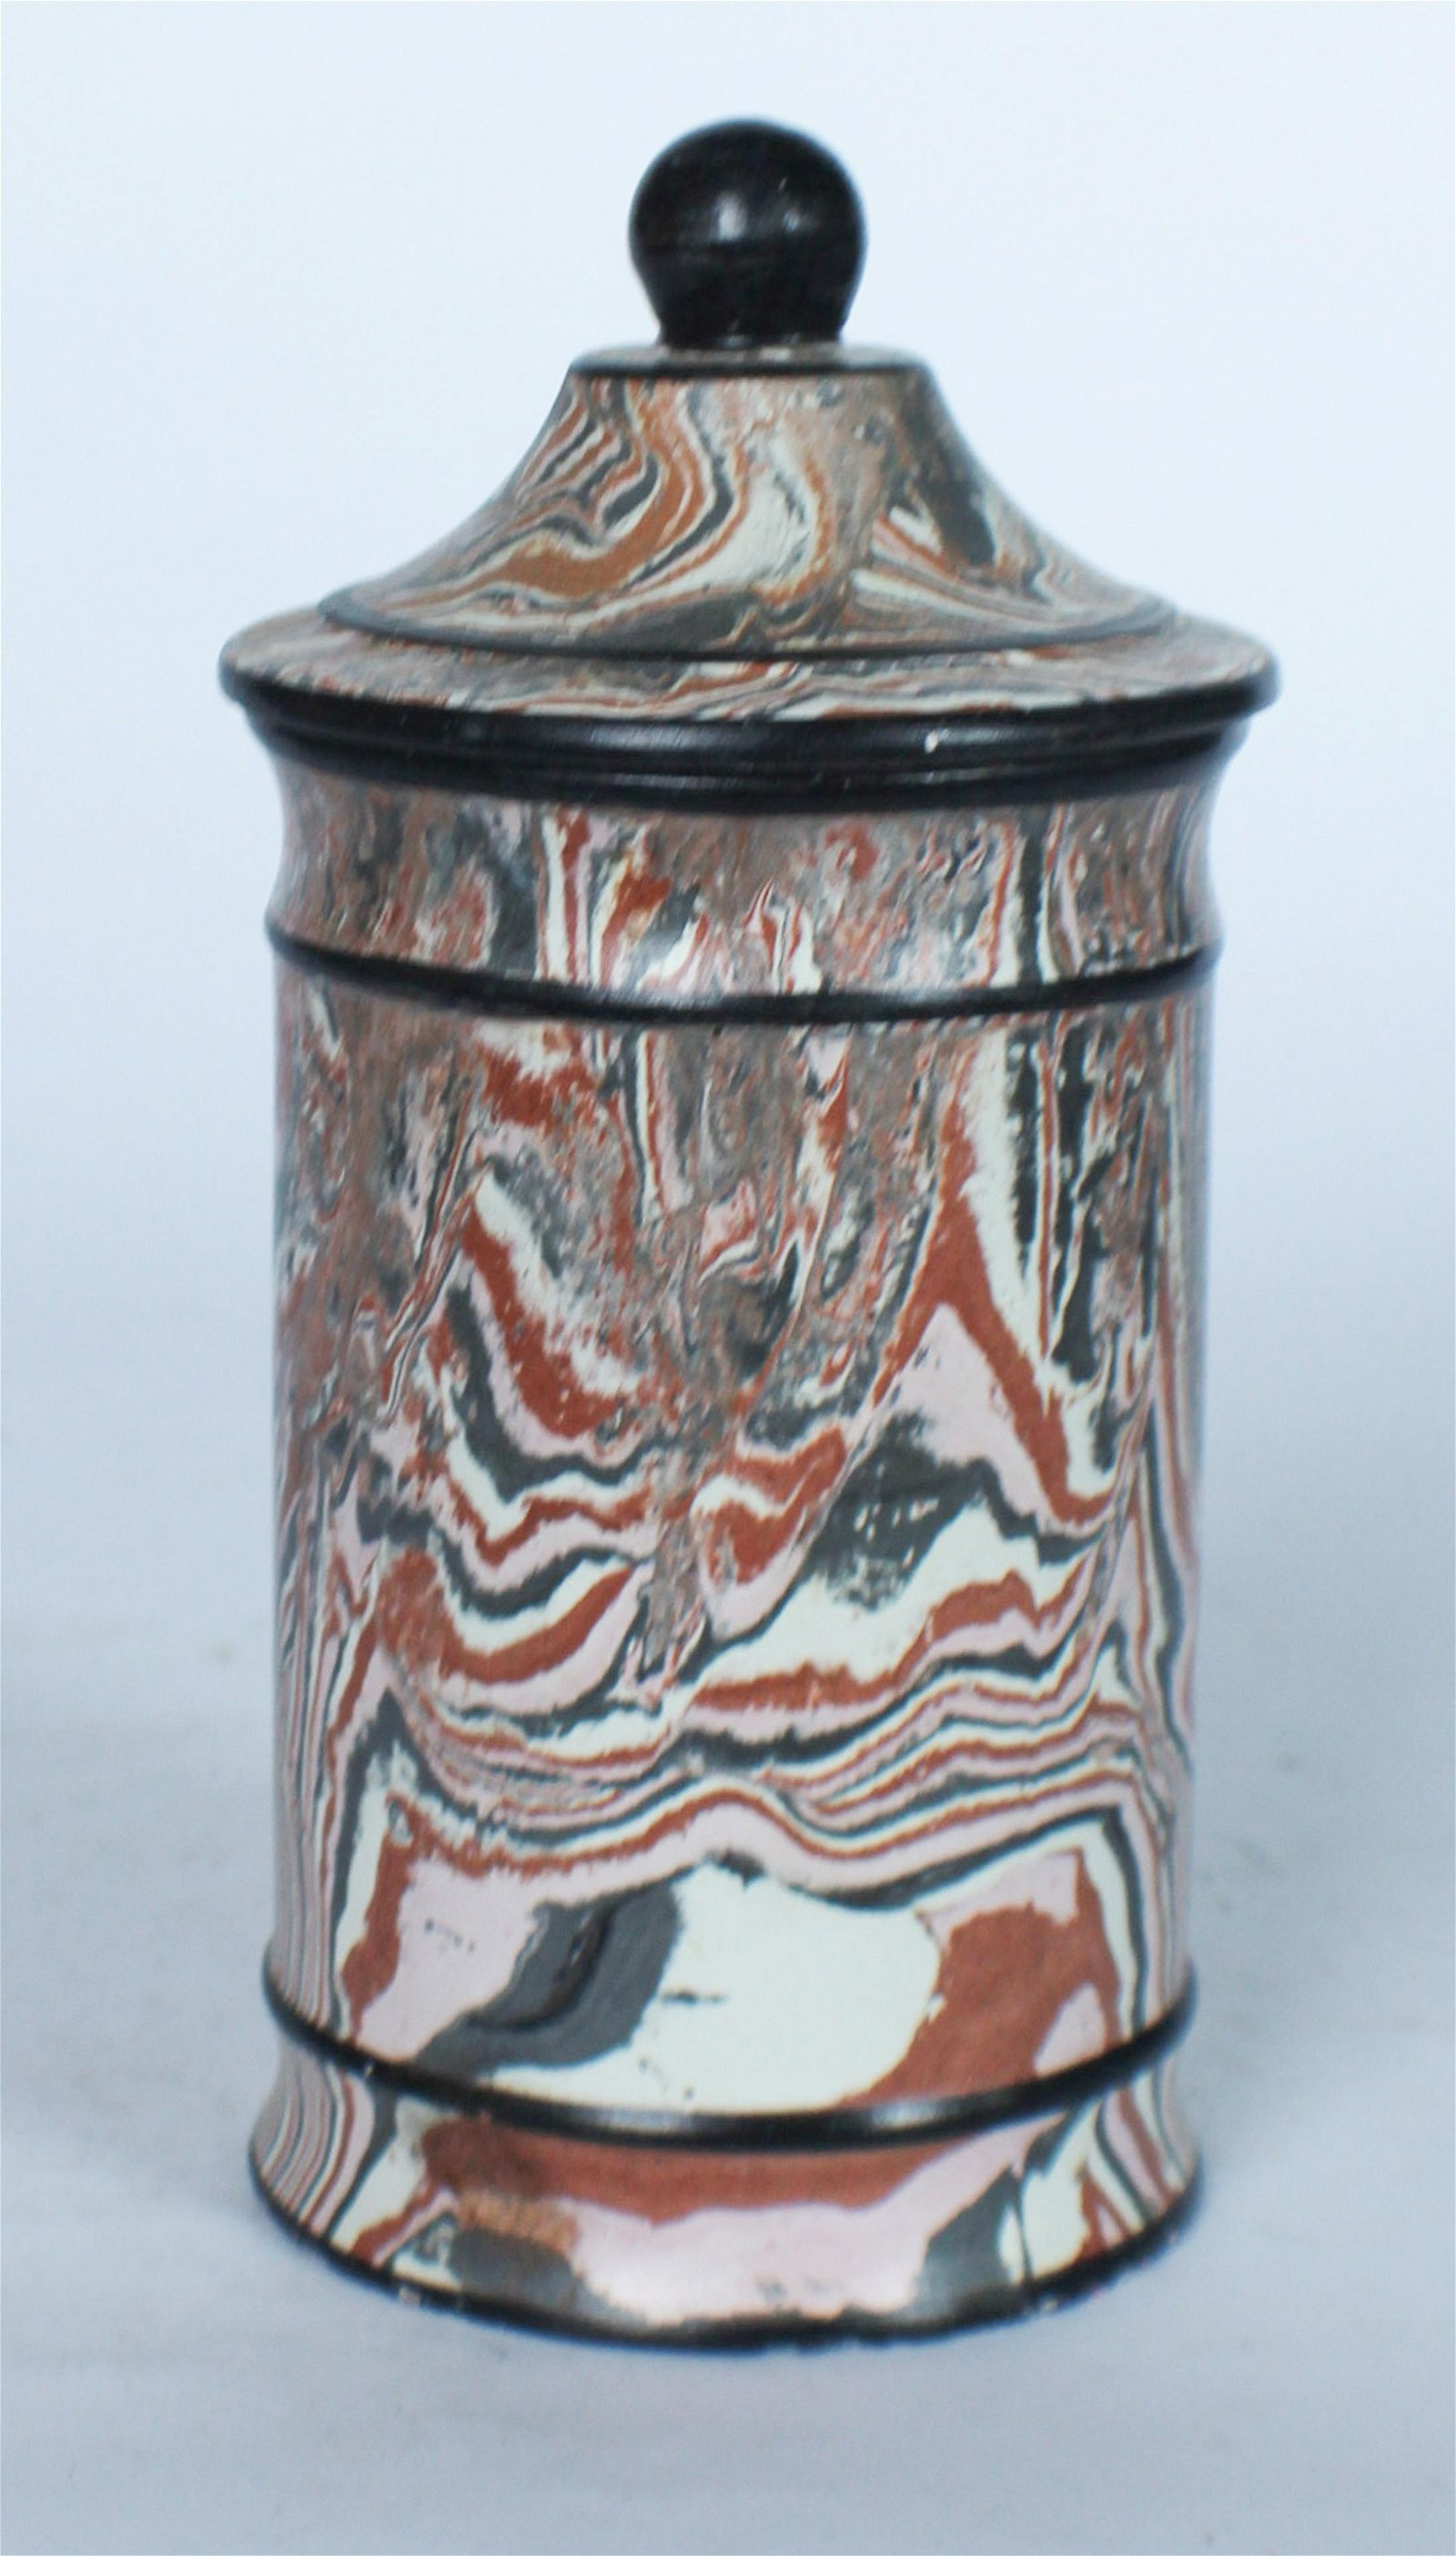 Antique English Agate Ware Lidded Pottery Jar